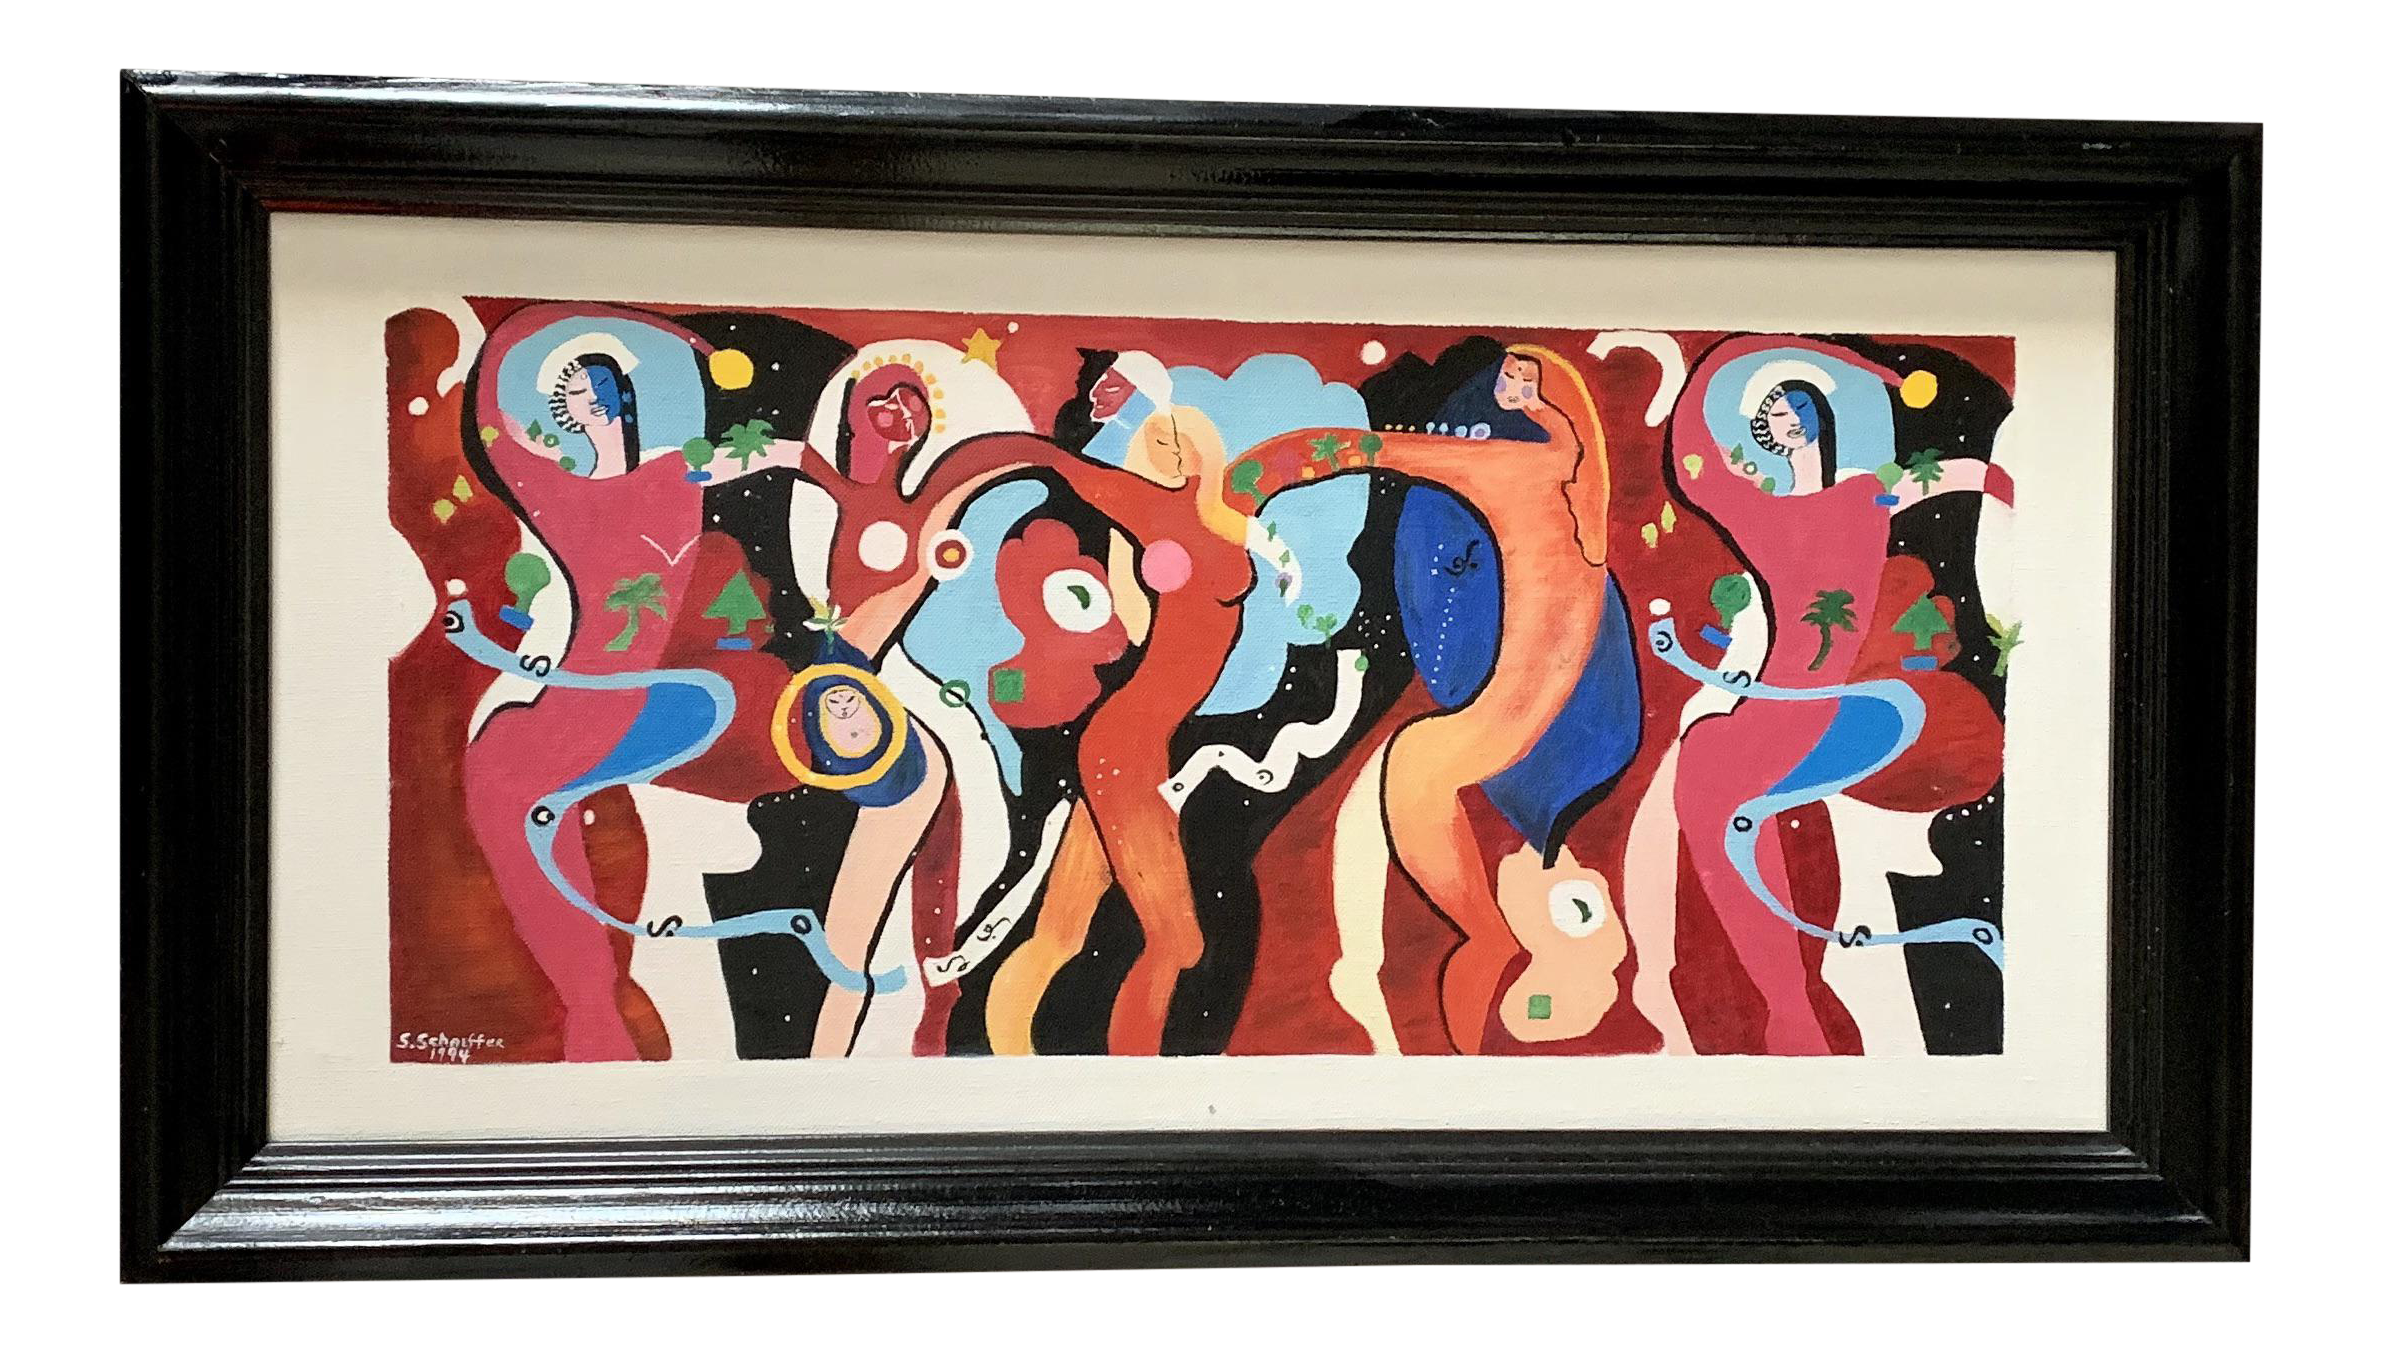 Pop Art Original Abstract Modernist Painting Of Dancing Women In Vivid Colors Signed Original Dated 1994 Chairish